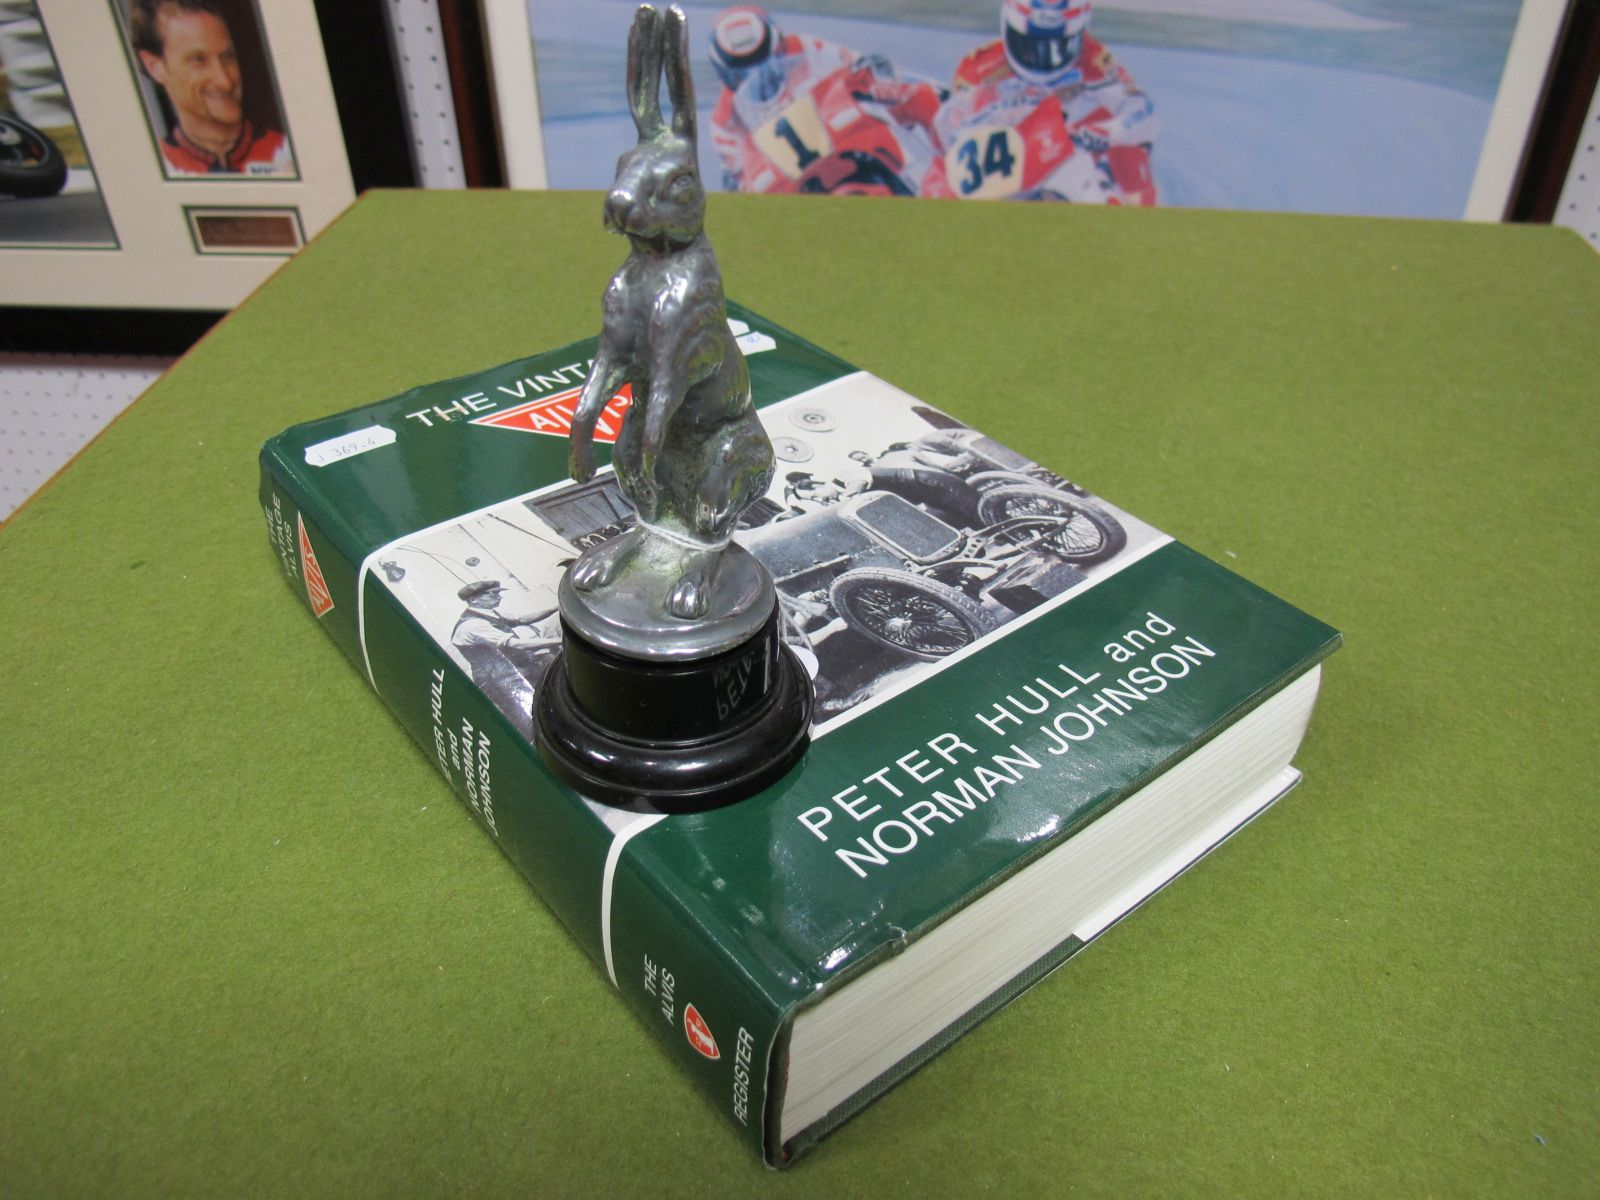 Lot 38 - An Alvis Hare Mascot, chromed mounted; plus book 'The Vintage Alvis' by Peter Hull and Norman